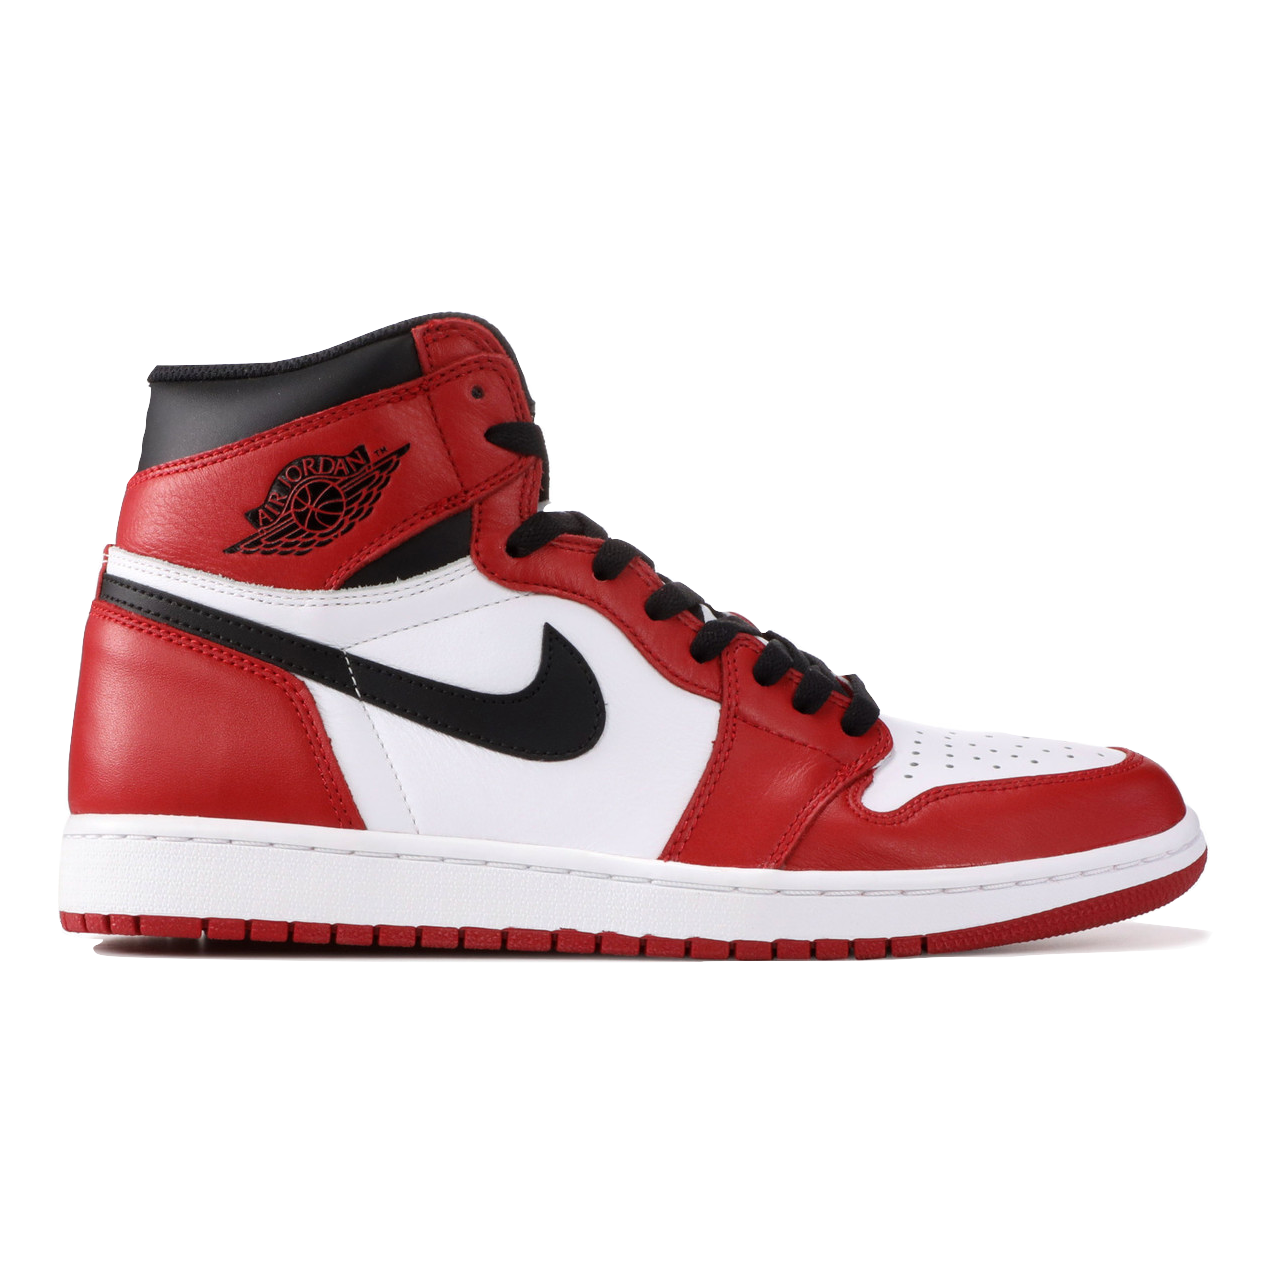 Air Jordan 1 Retro - Chicago (2015) - Used